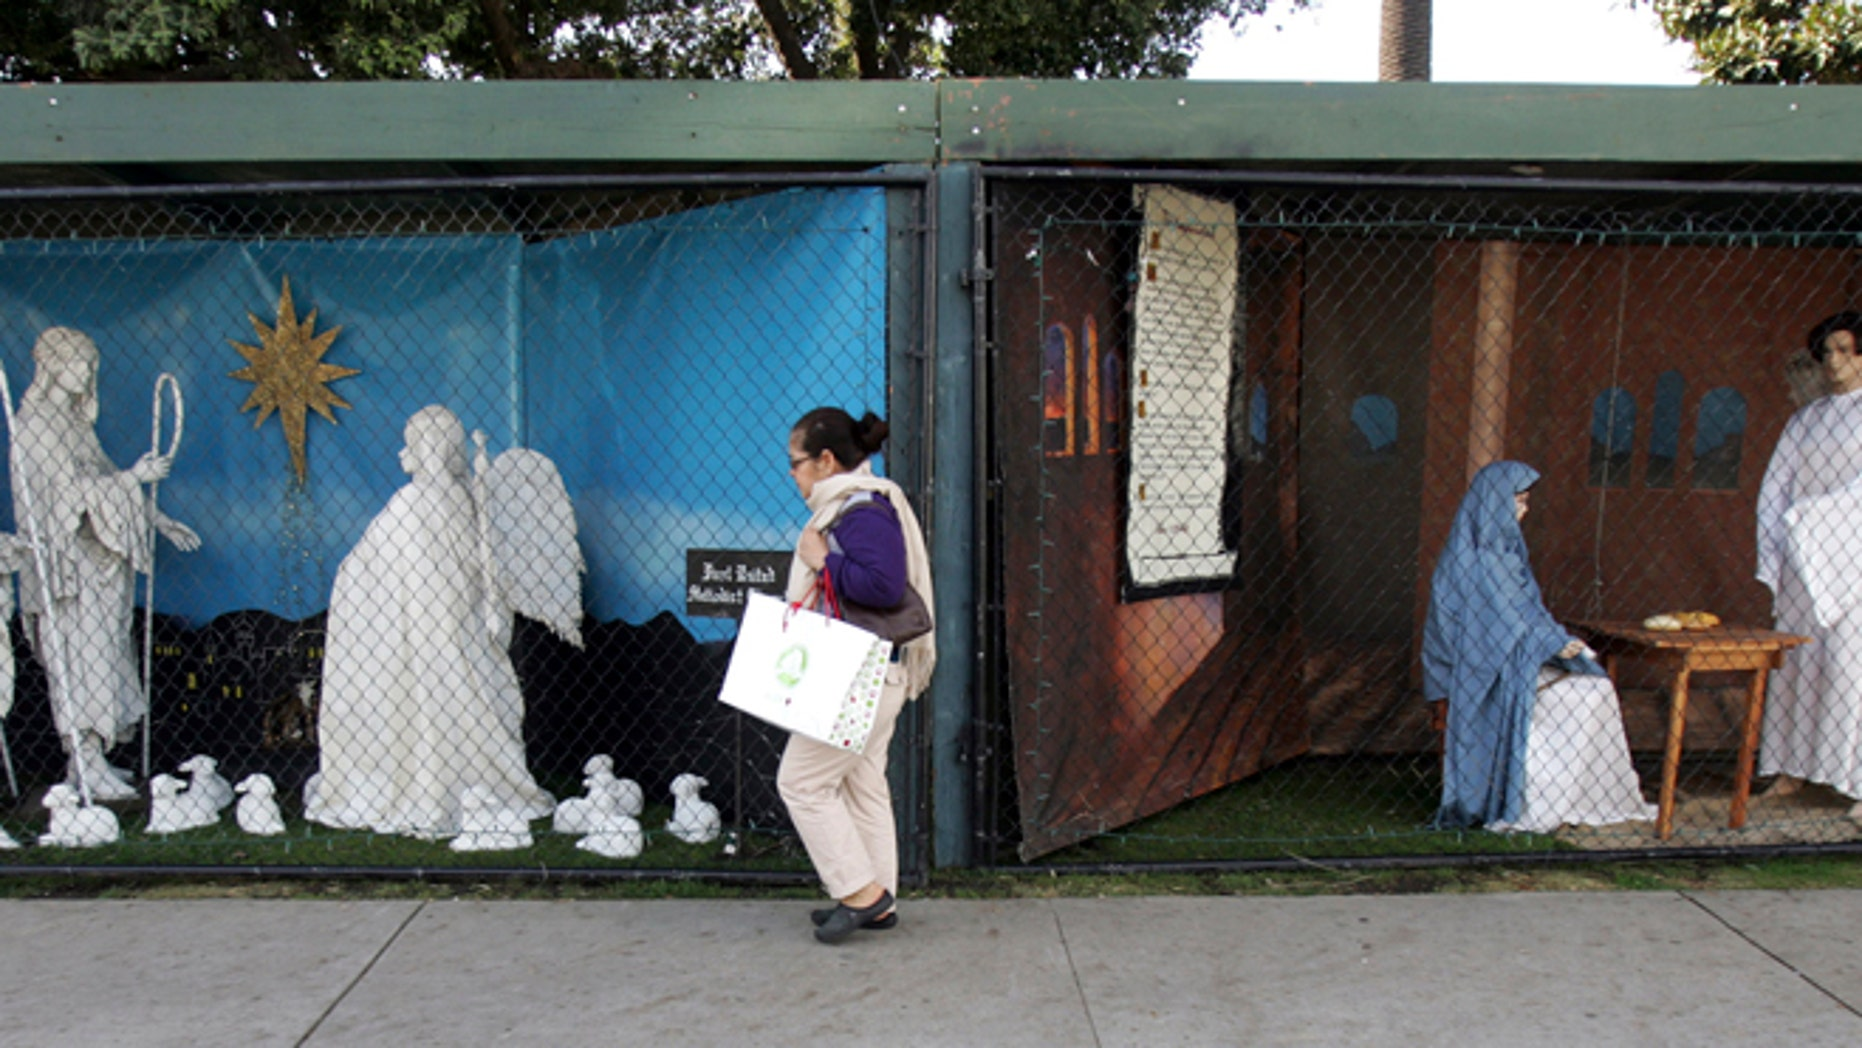 Dec. 13, 2011: A woman walks past a two of the traditional displays showing the Nativity scene along Ocean Avenue at Palisades Park in Santa Monica, Calif.